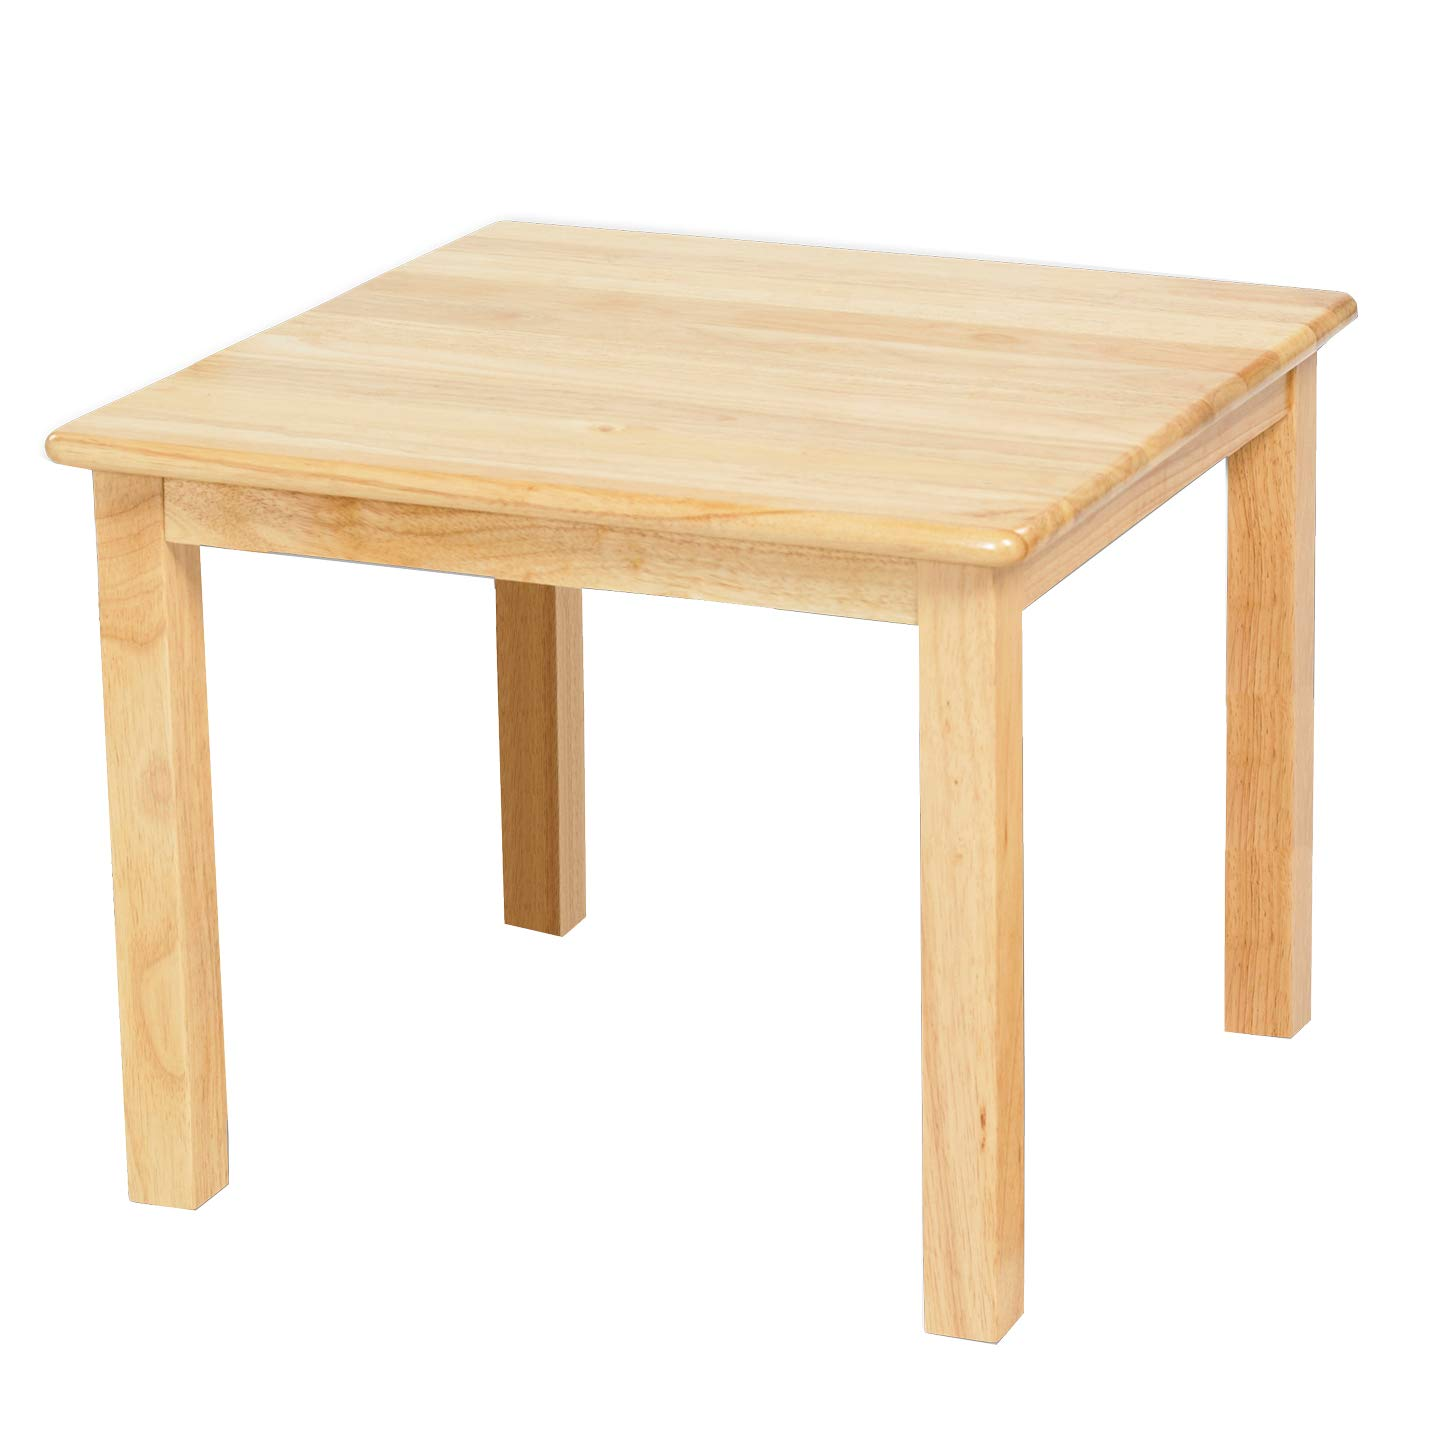 ECR4KidsDeluxe Hardwood Activity Play Table for Kids, Solid Wood Childrens Table for Playroom/Daycare/Preschool, 24 Inch Square, Natural Finish